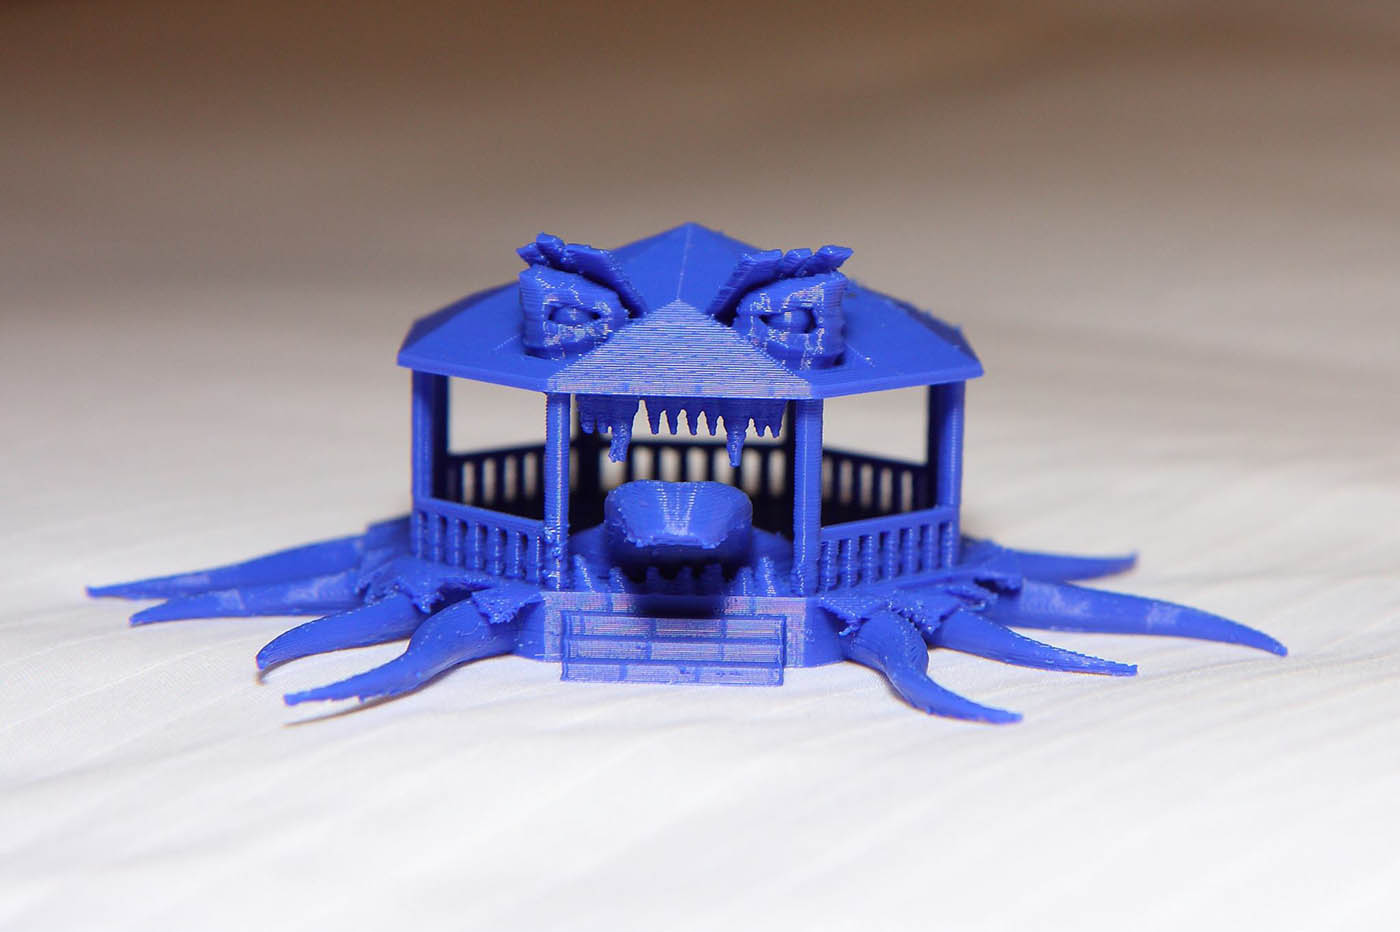 3D printed scary house